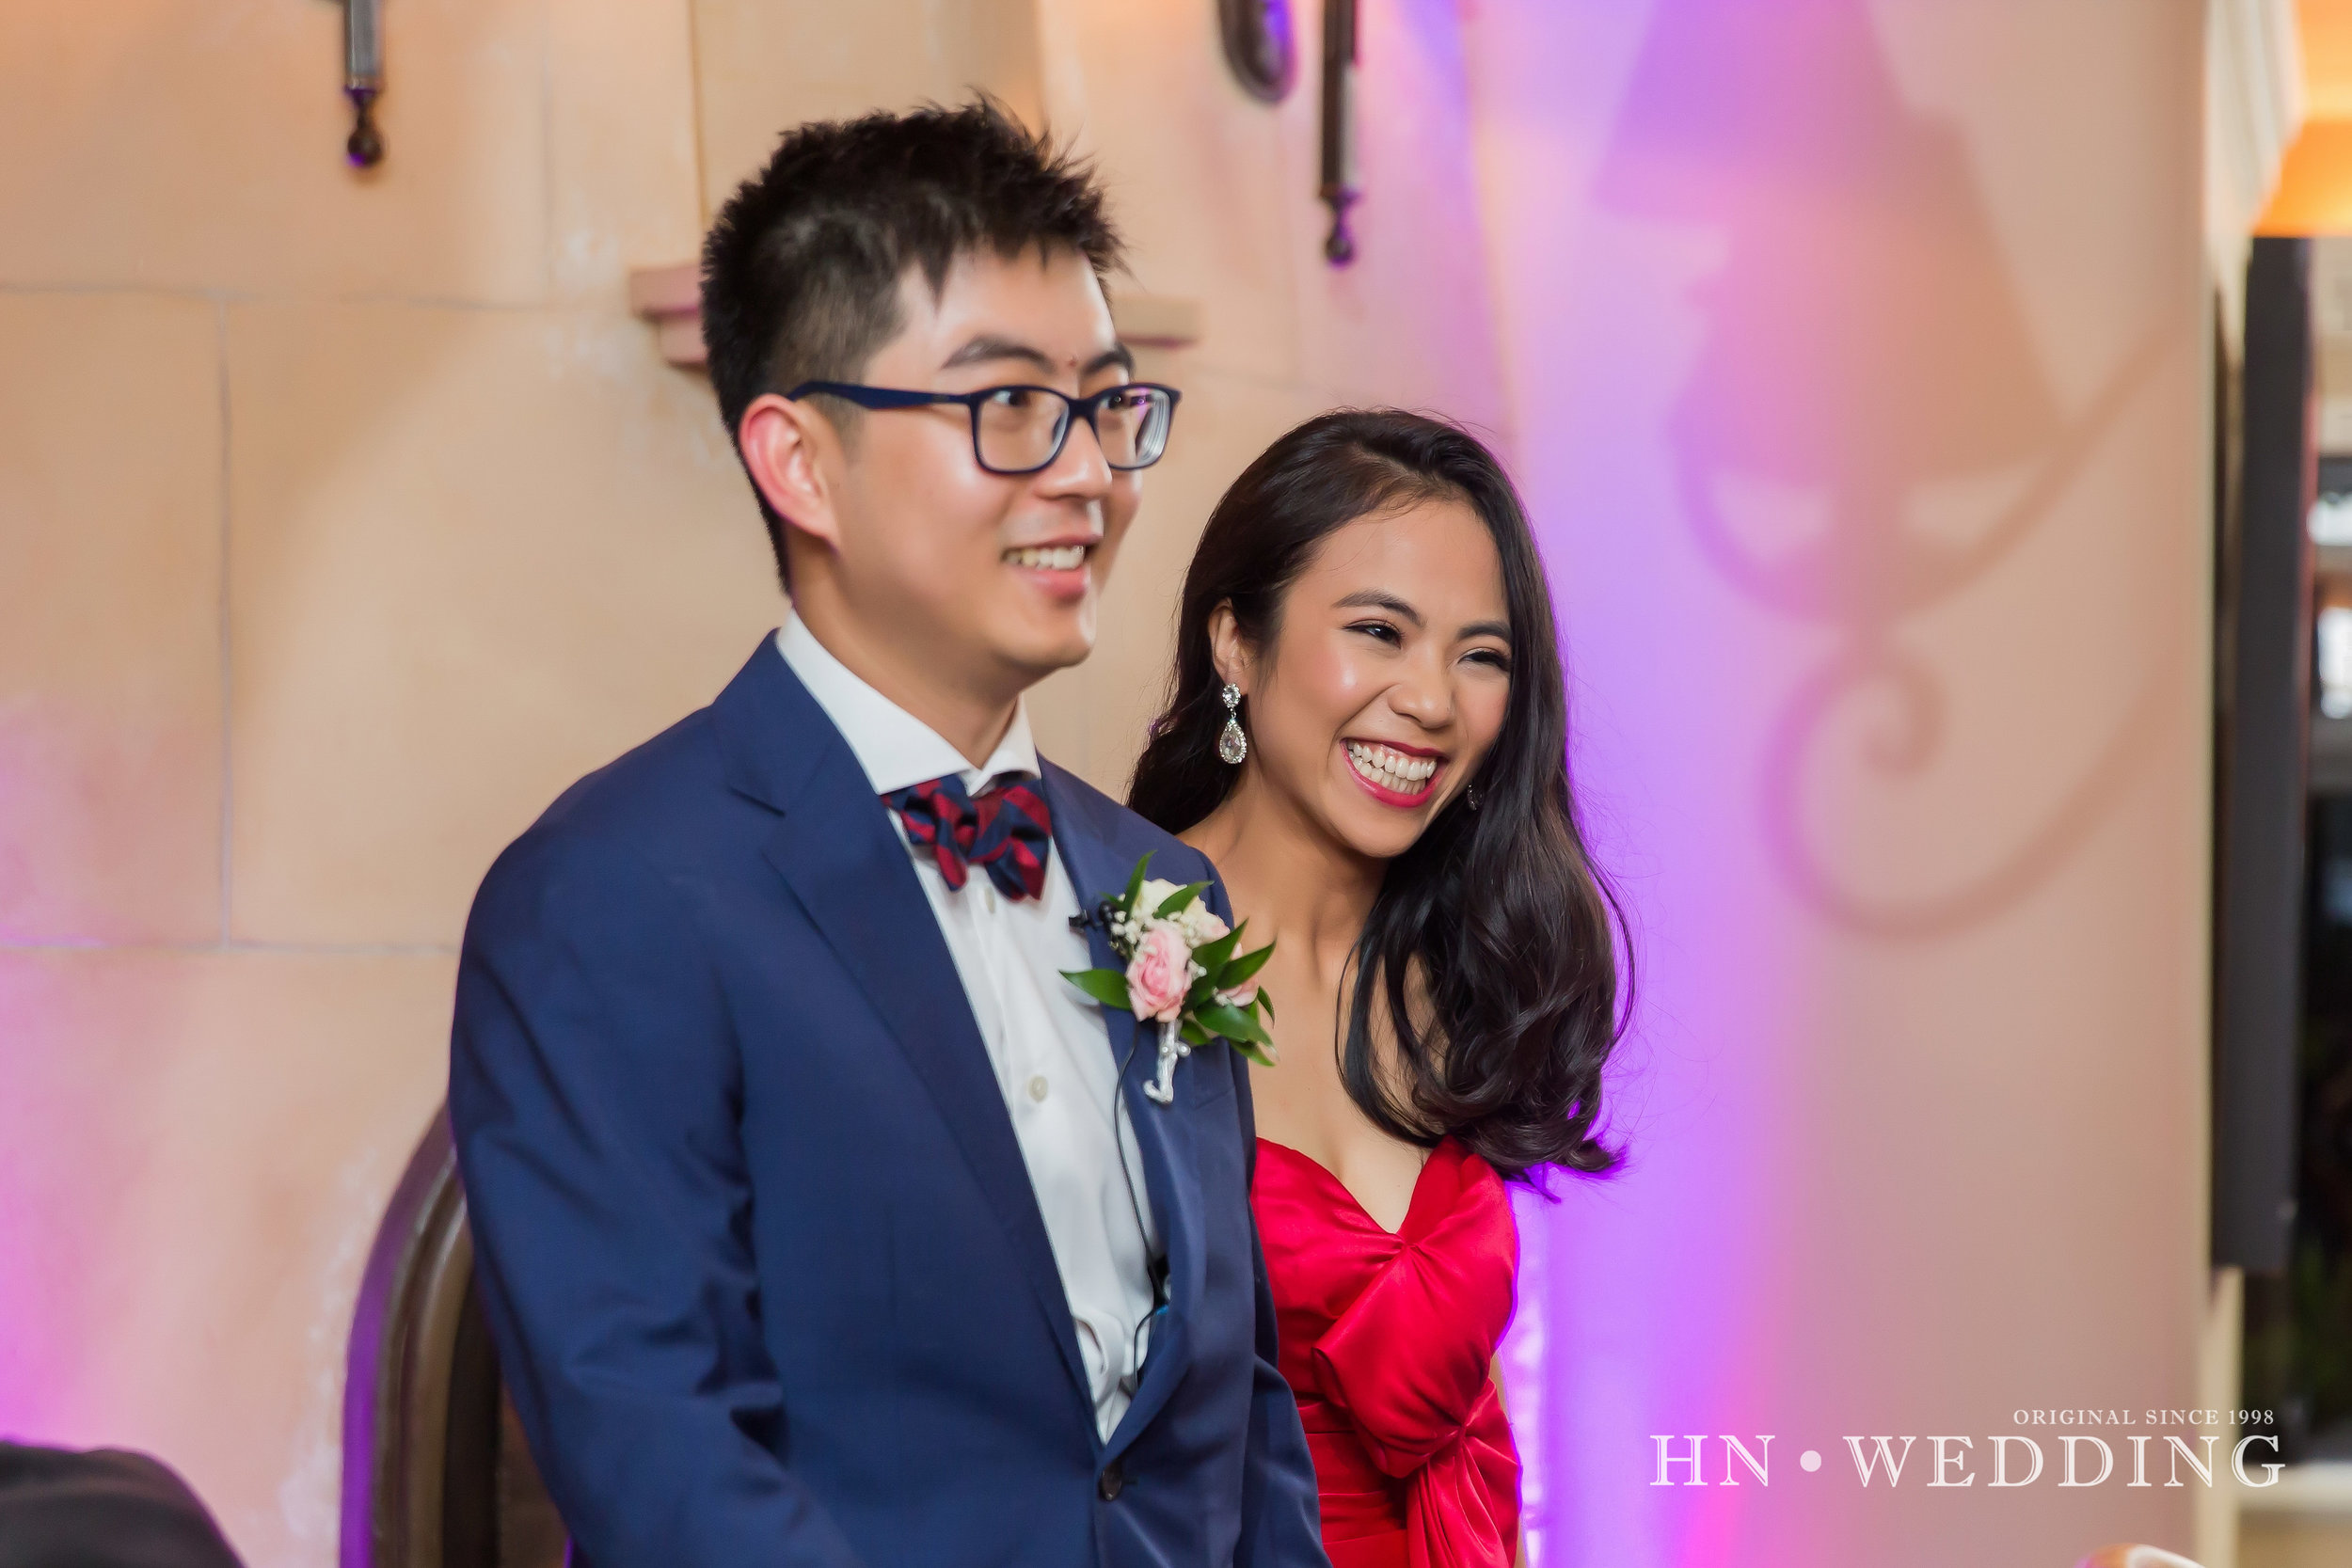 HNwedding-weddingday-20161029-5926.jpg